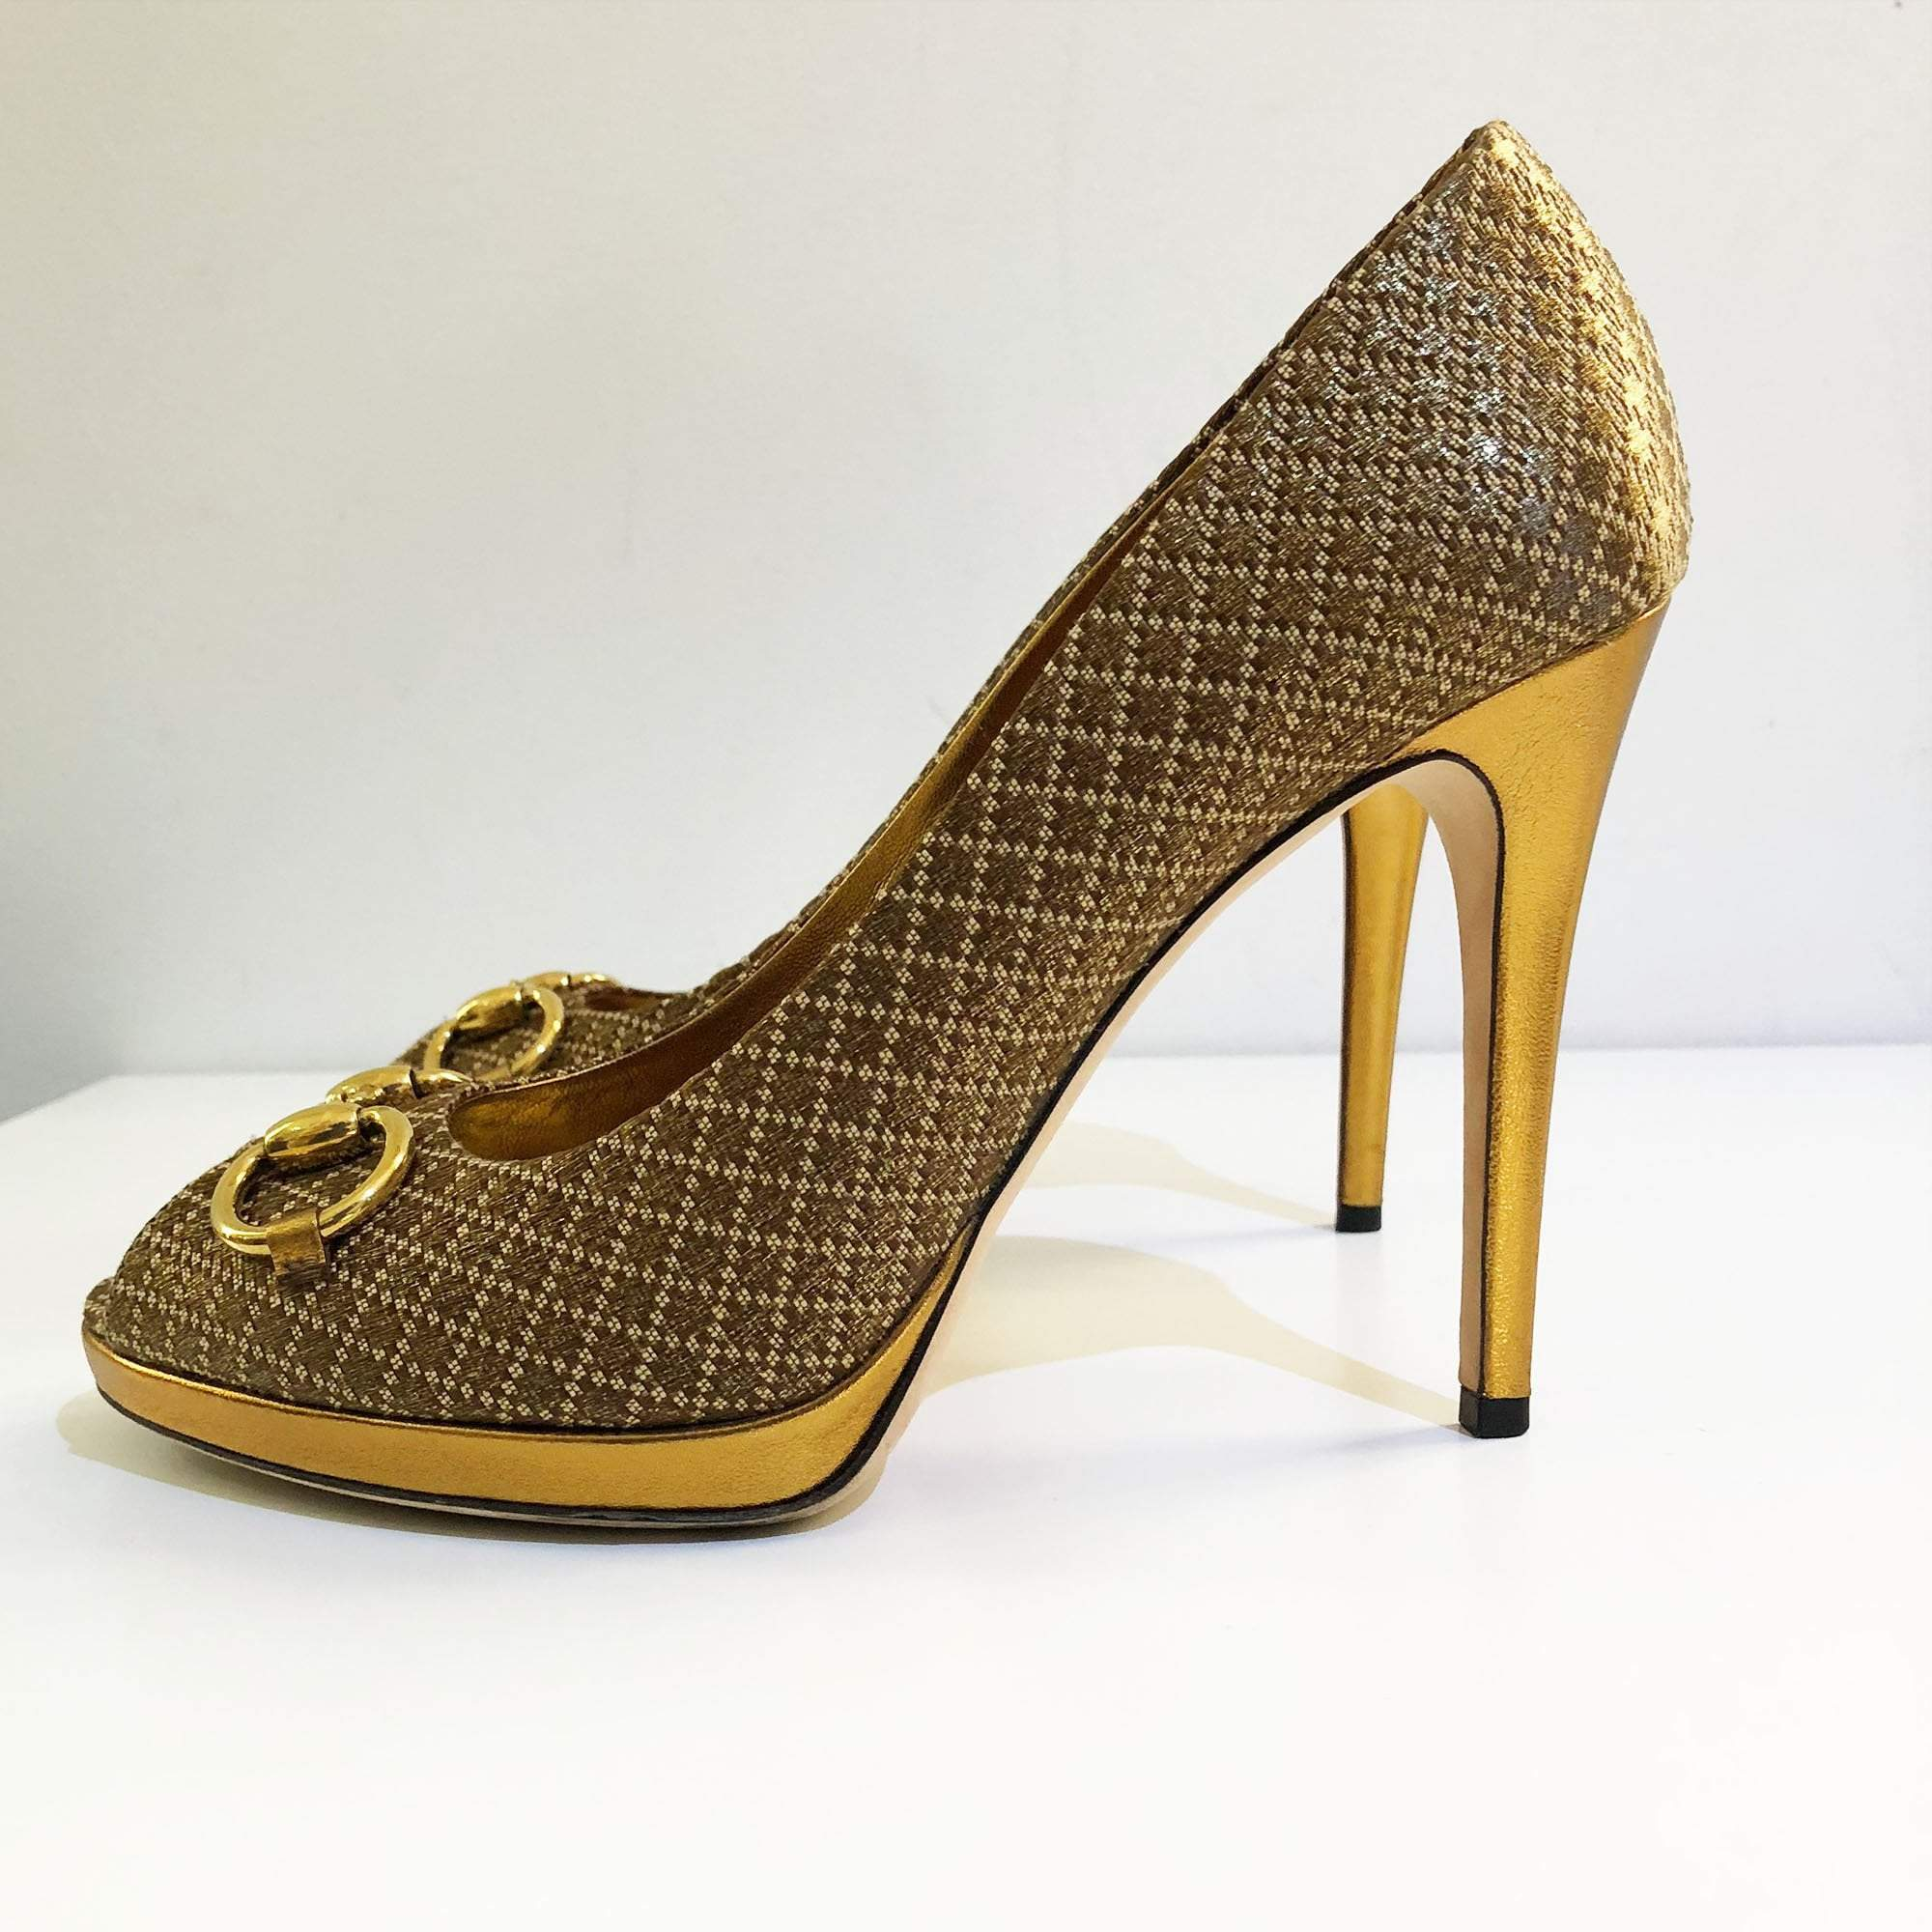 Gucci Gold Horsebit Peep Toe Pumps